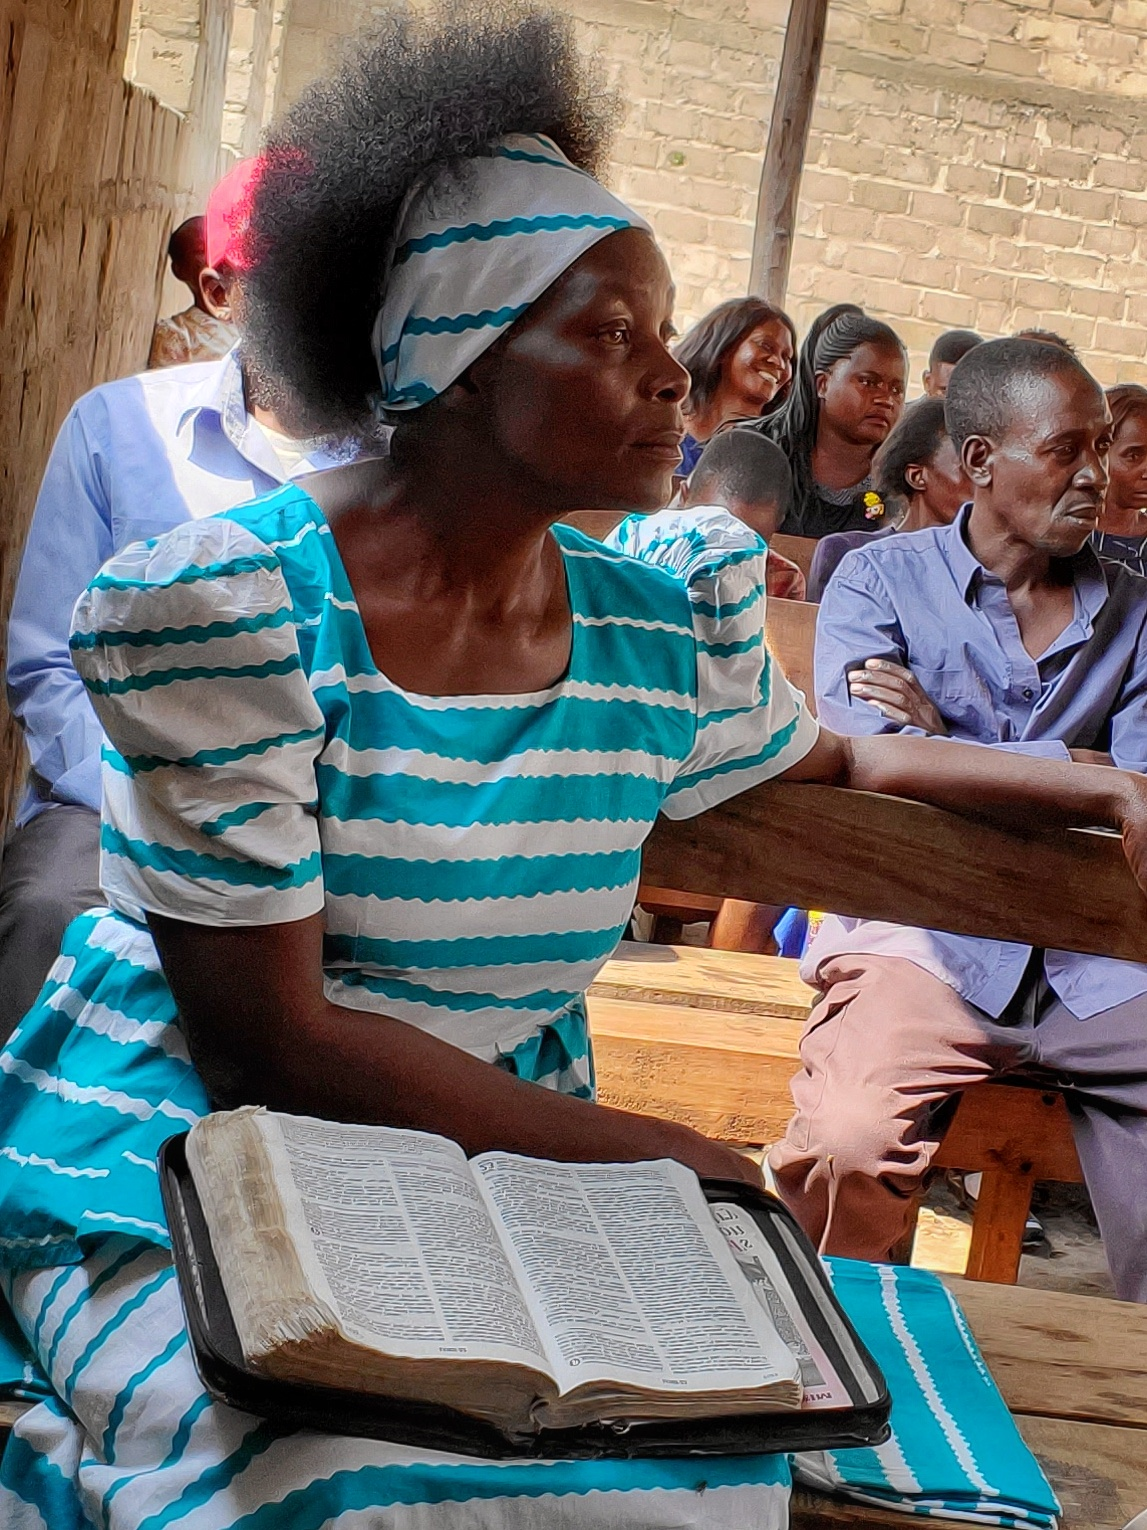 Mrs. Mundia, the mother of new vine founder, yuyi mundia, and the vineyard congregation listen raptly to abby's teaching.